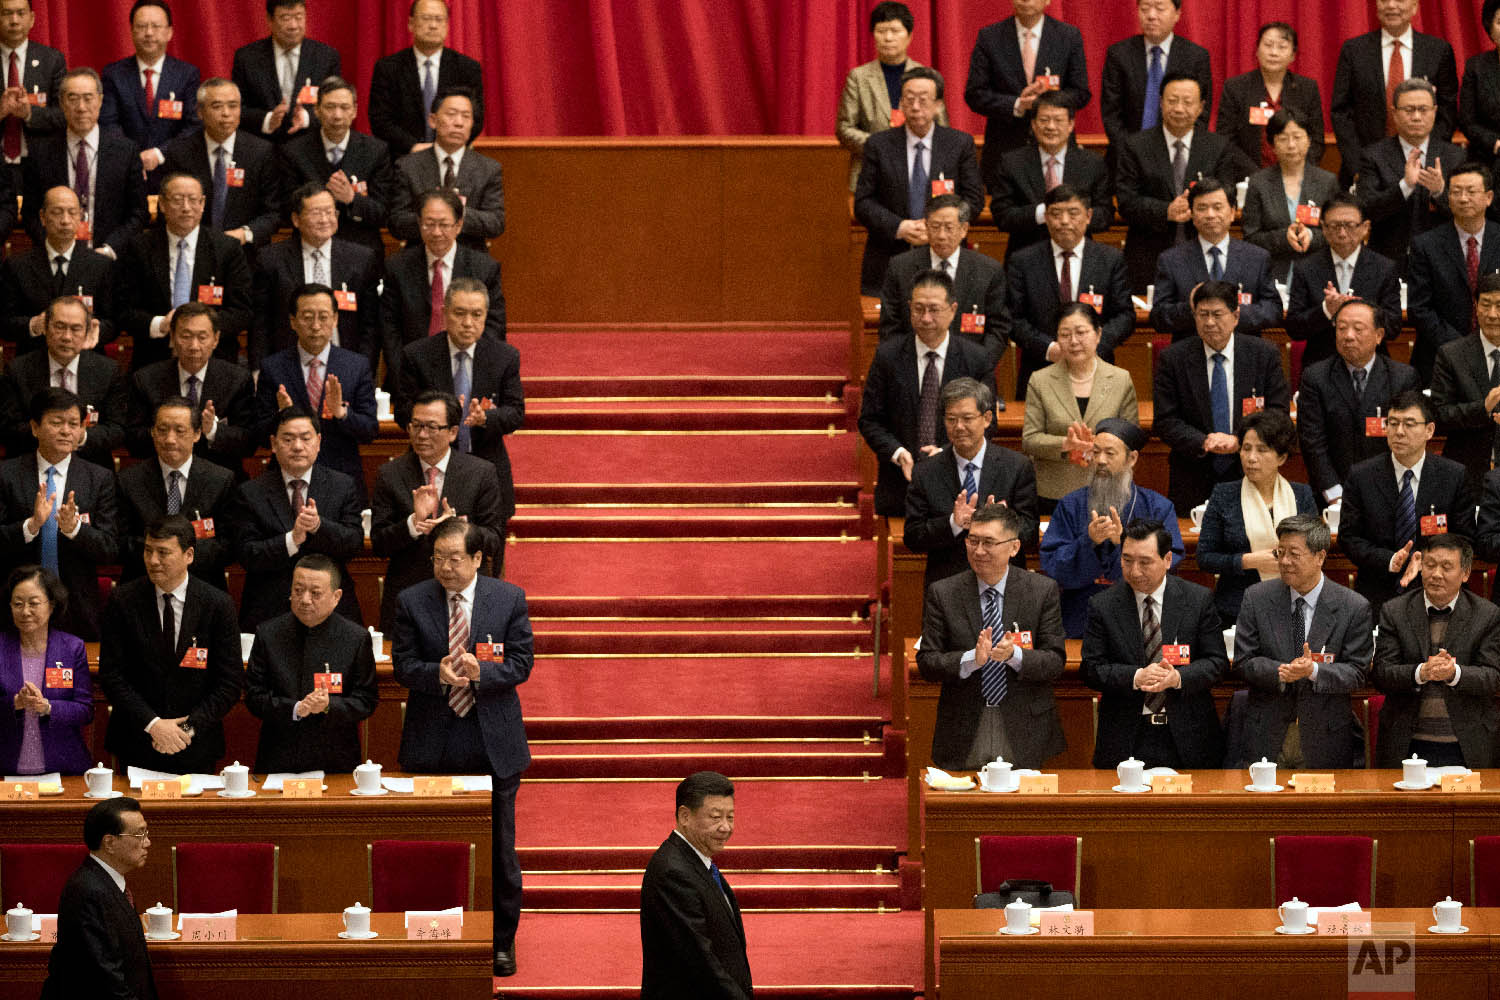 Chinese President Xi Jinping, center, arrives with Premier Li Keqiang, left, for the opening session of the Chinese People's Political Consultative Conference in Beijing's Great Hall of the People on March 3, 2018. (AP Photo/Ng Han Guan)